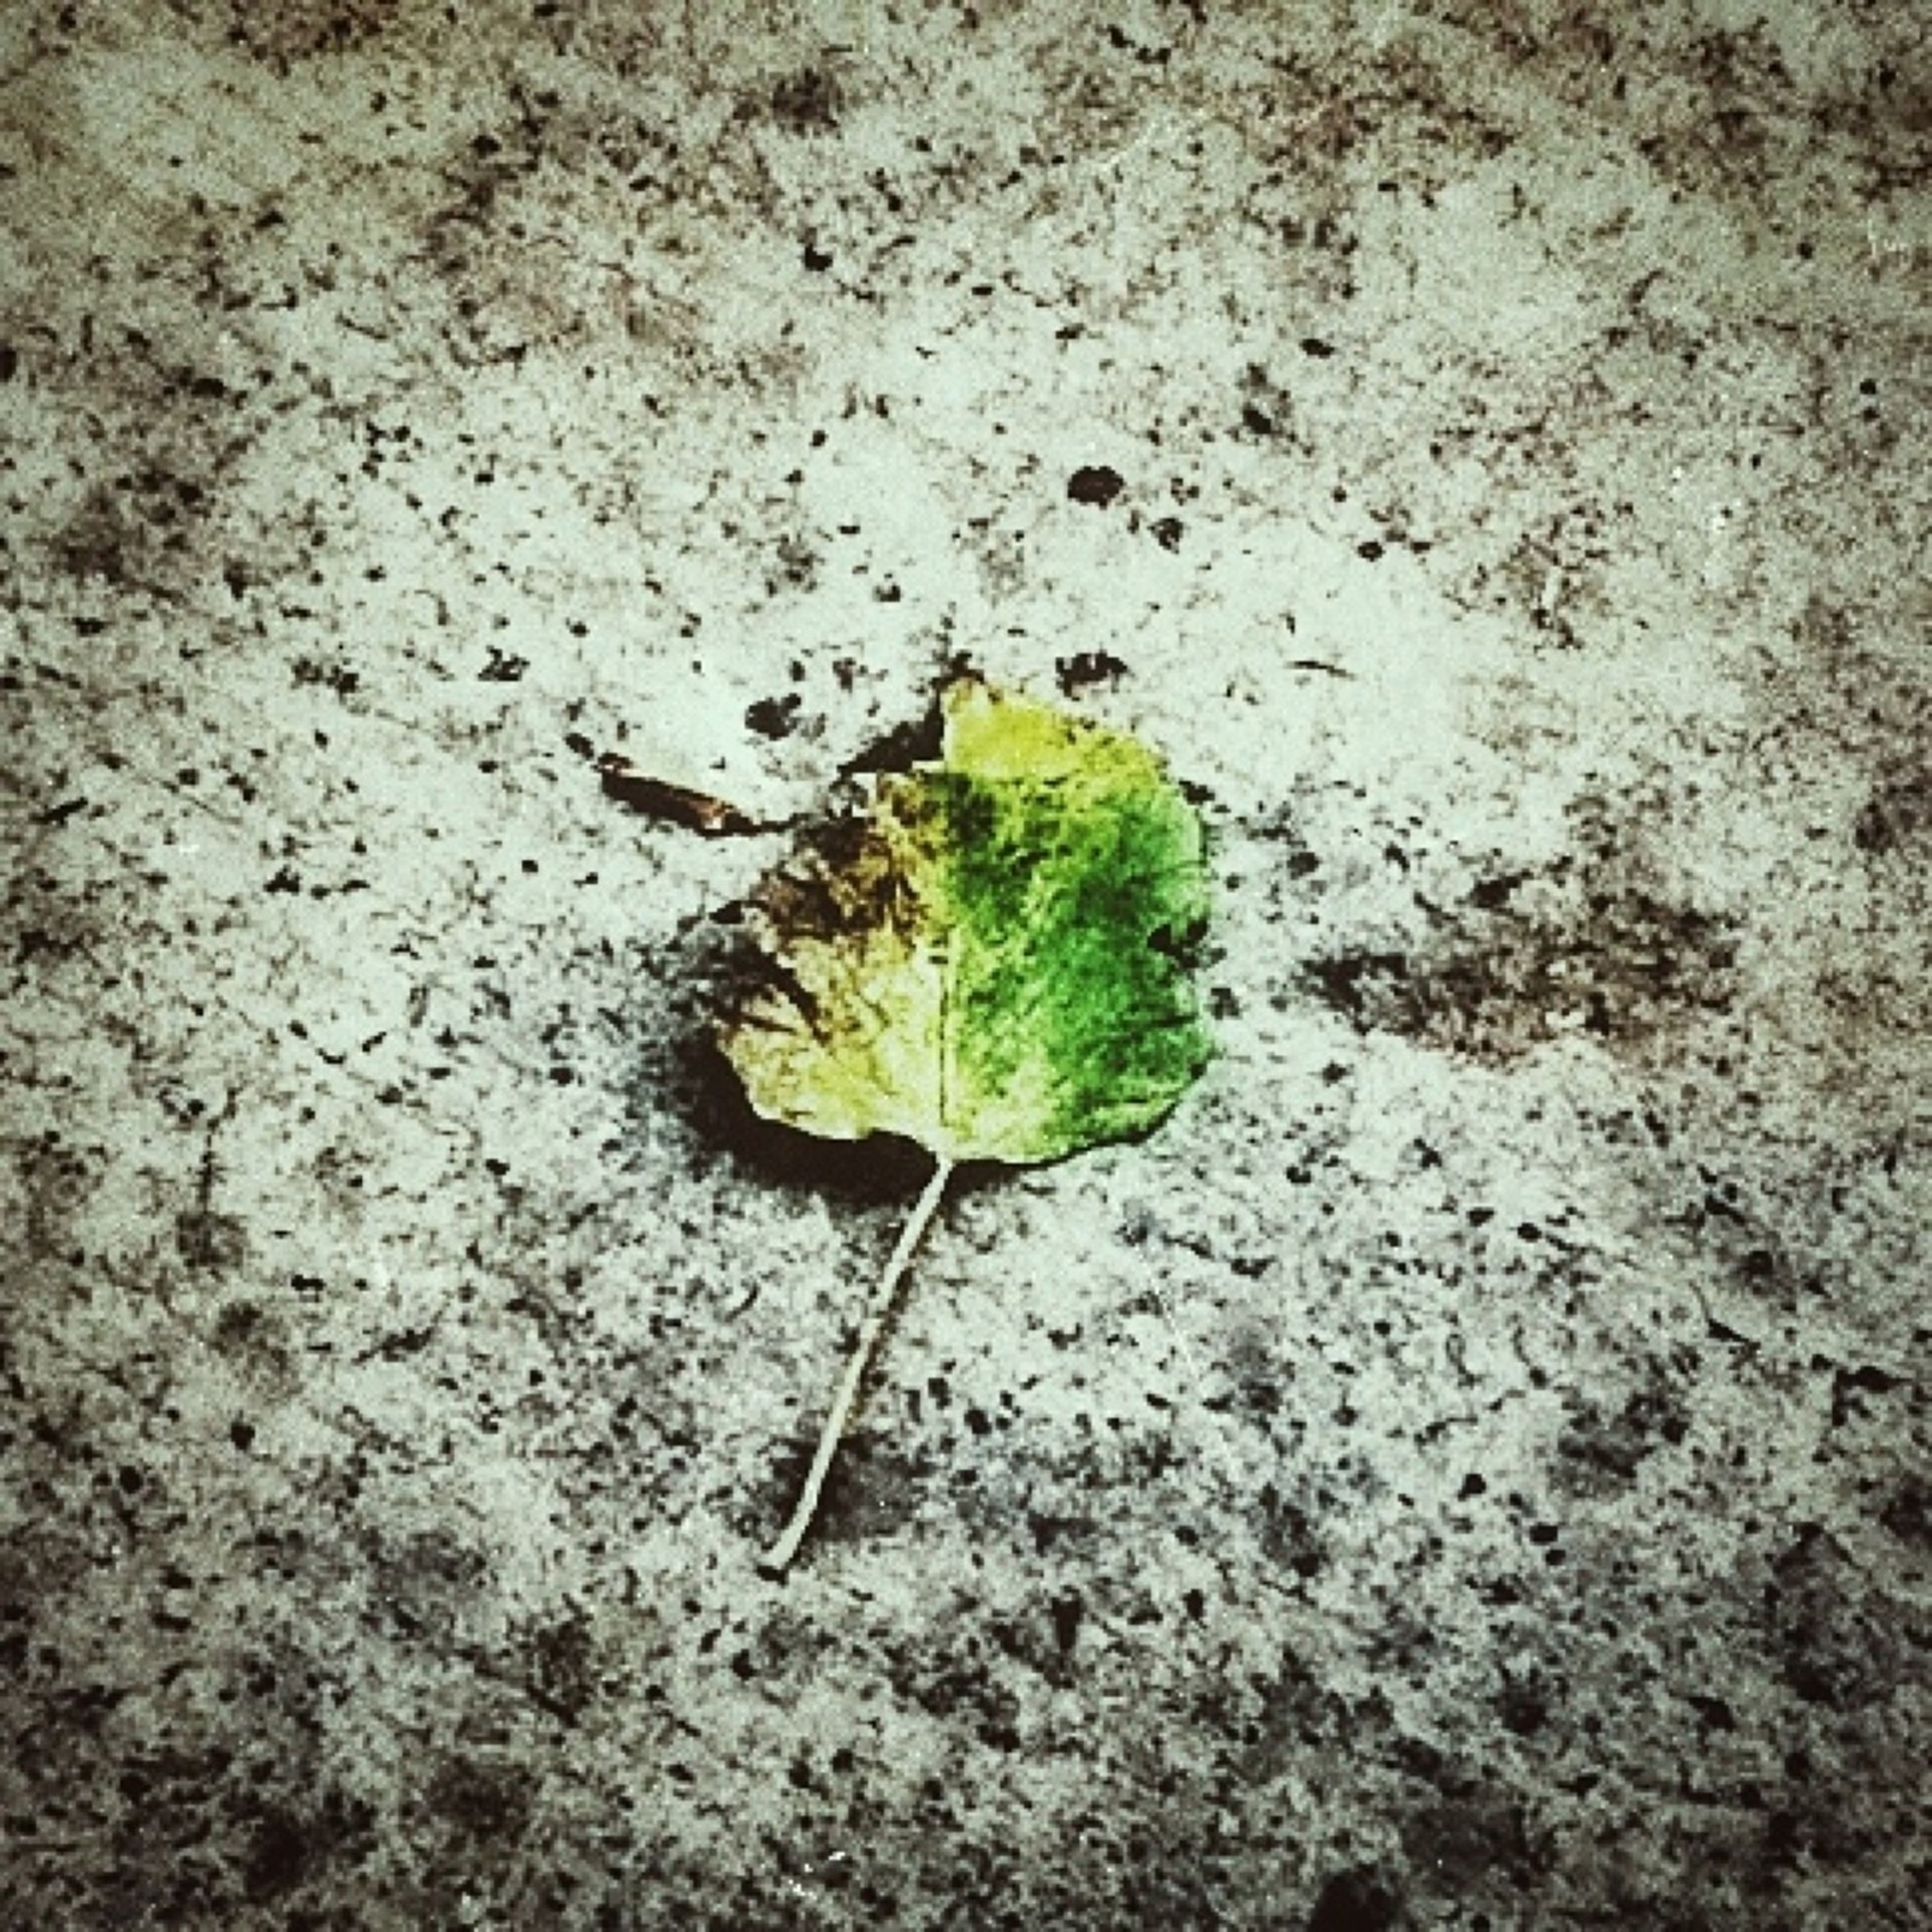 leaf, growth, plant, close-up, green color, nature, high angle view, fragility, stem, ground, day, freshness, no people, outdoors, growing, new life, beginnings, wall - building feature, green, beauty in nature